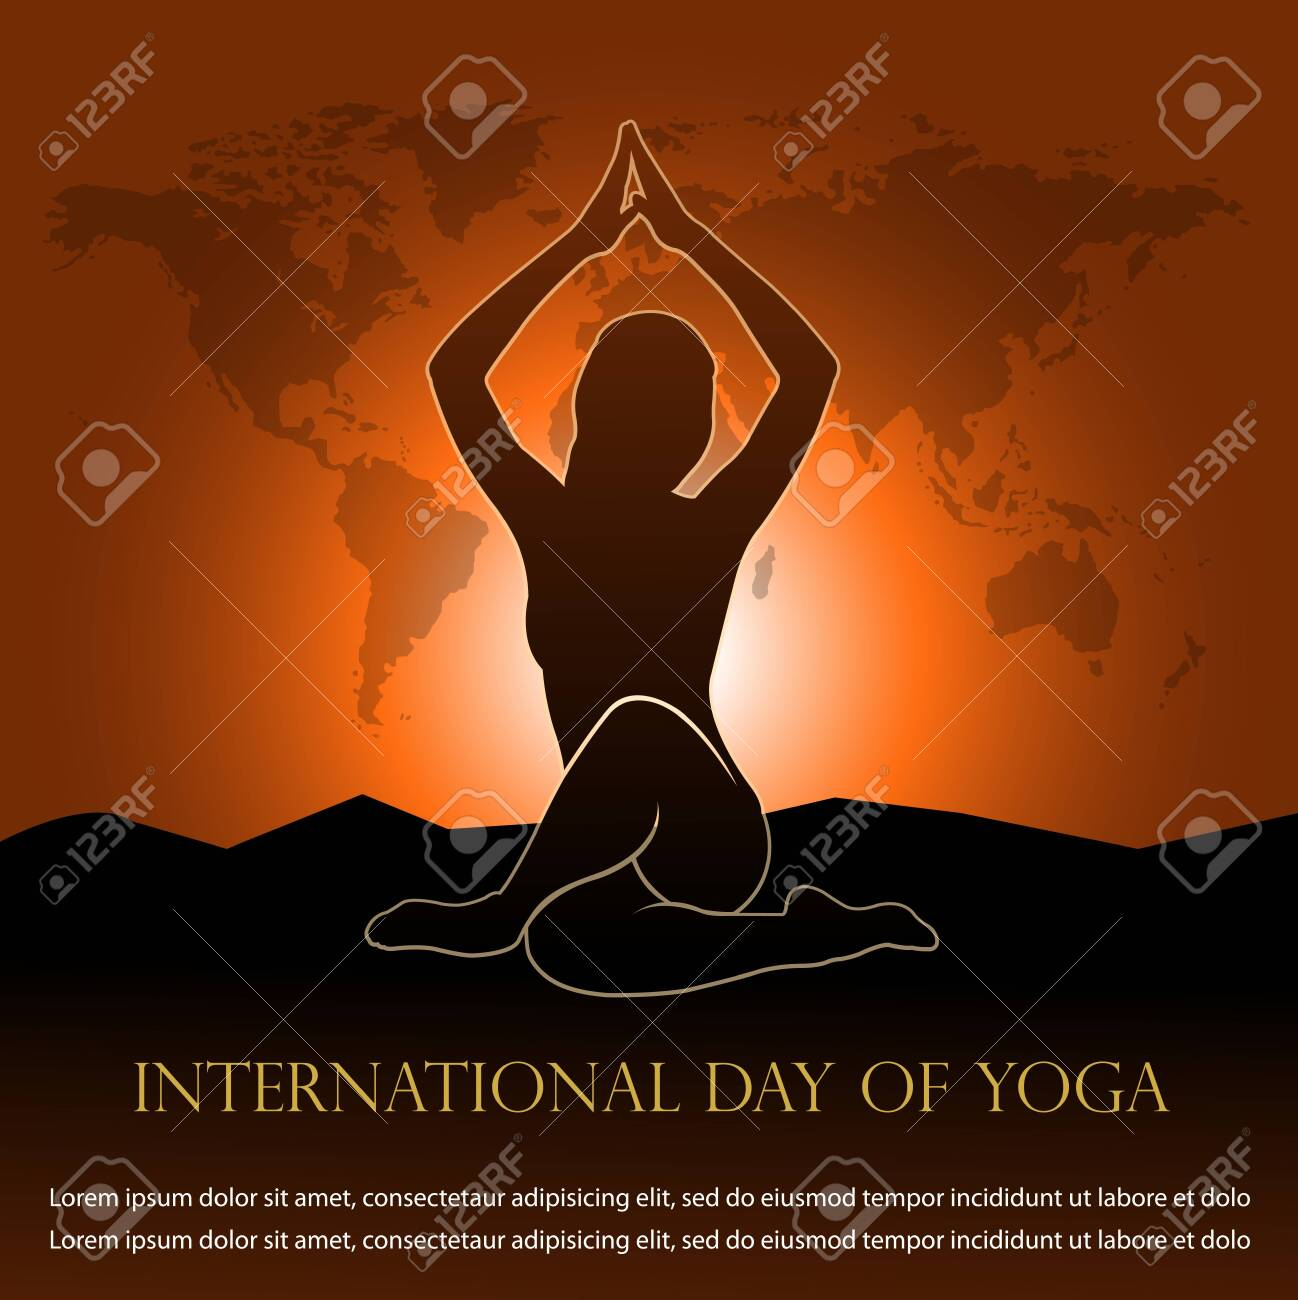 Vector Illustration For International Day Of Yoga Banner Royalty Free Cliparts Vectors And Stock Illustration Image 126170487